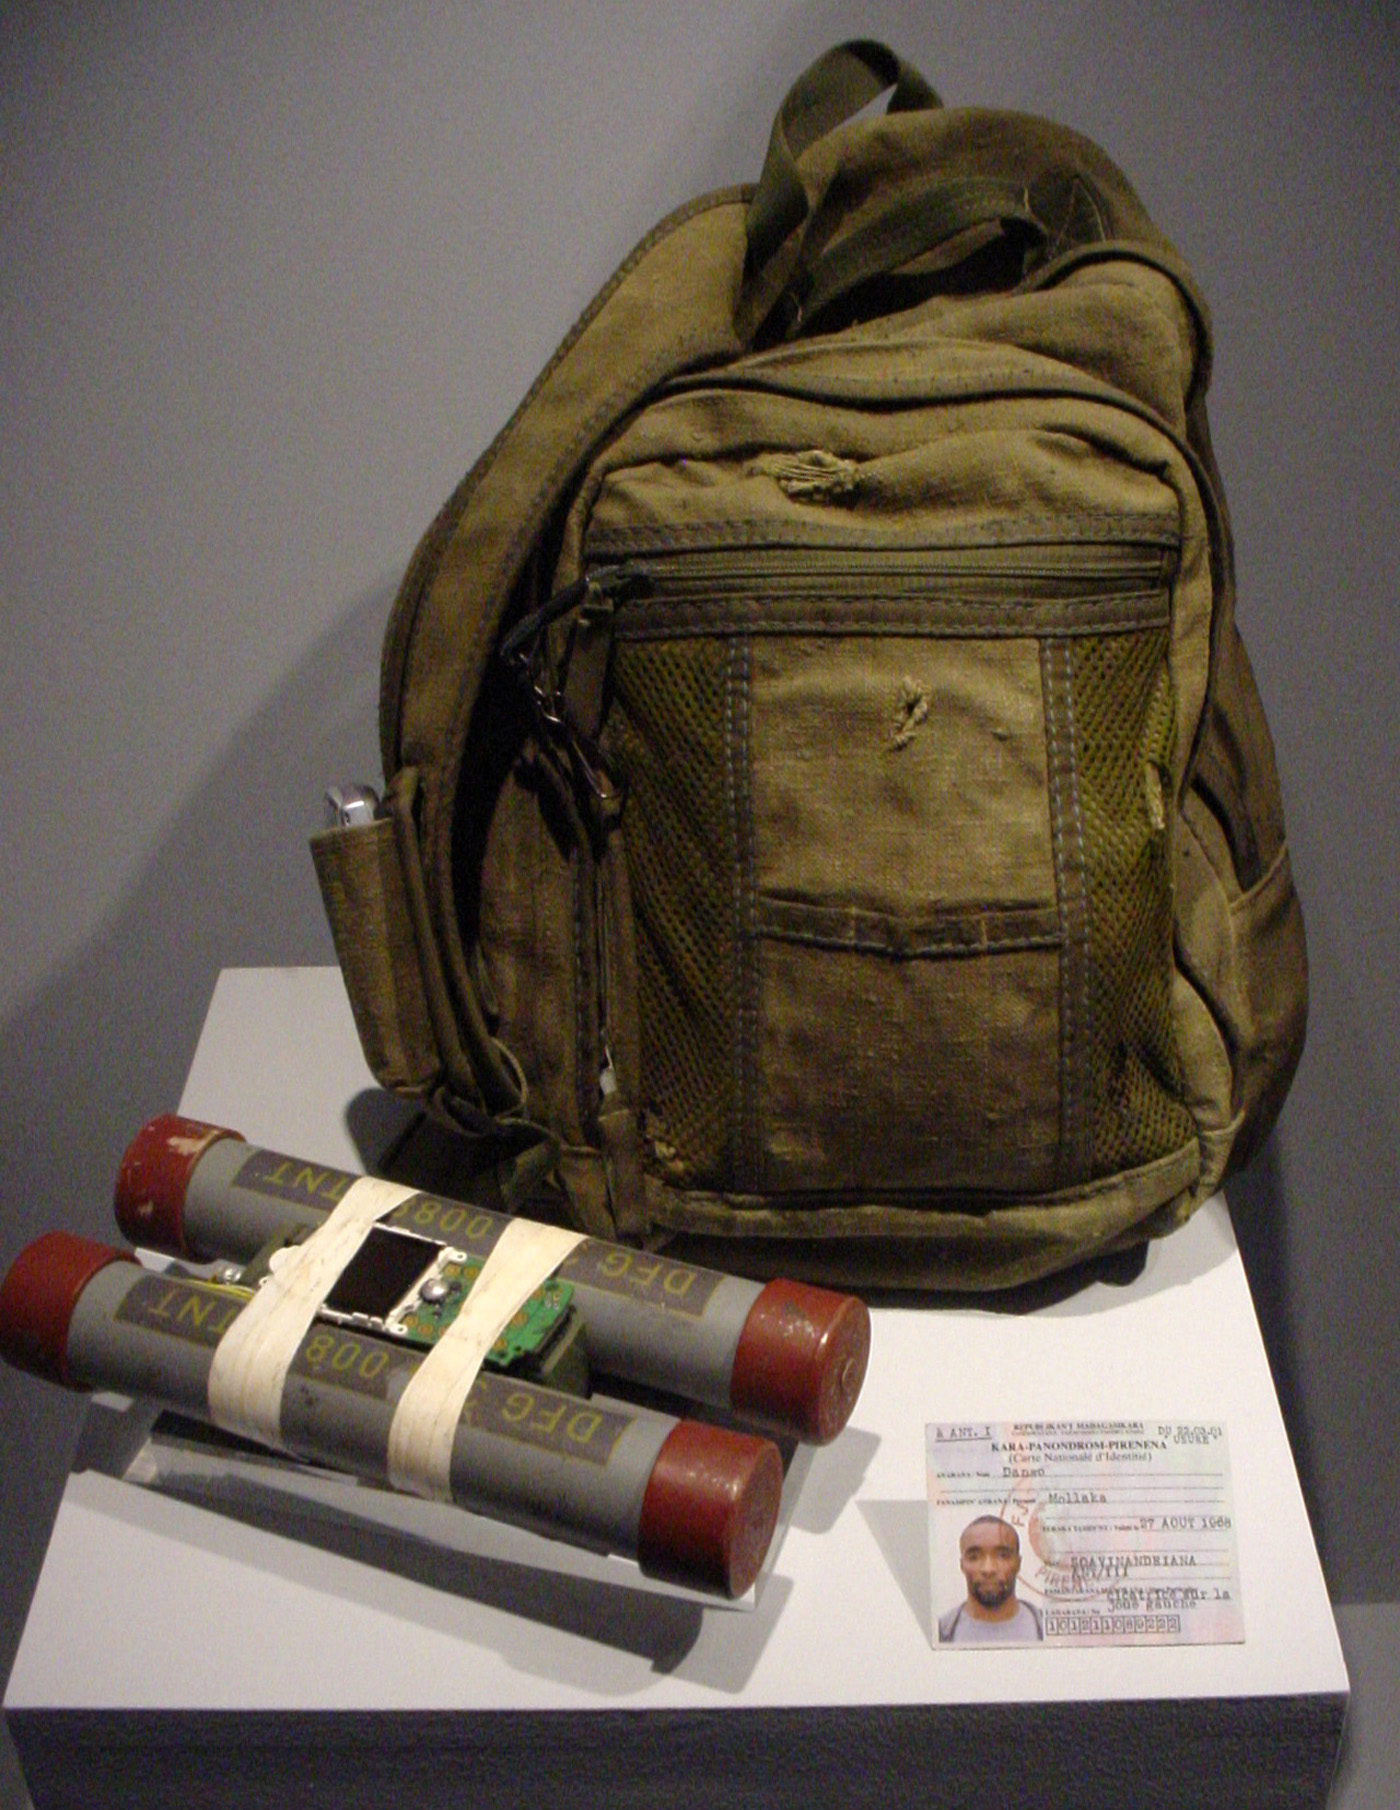 A prop bomb from 'Casino Royale' (2006) (photo by the author for Hyperallergic)